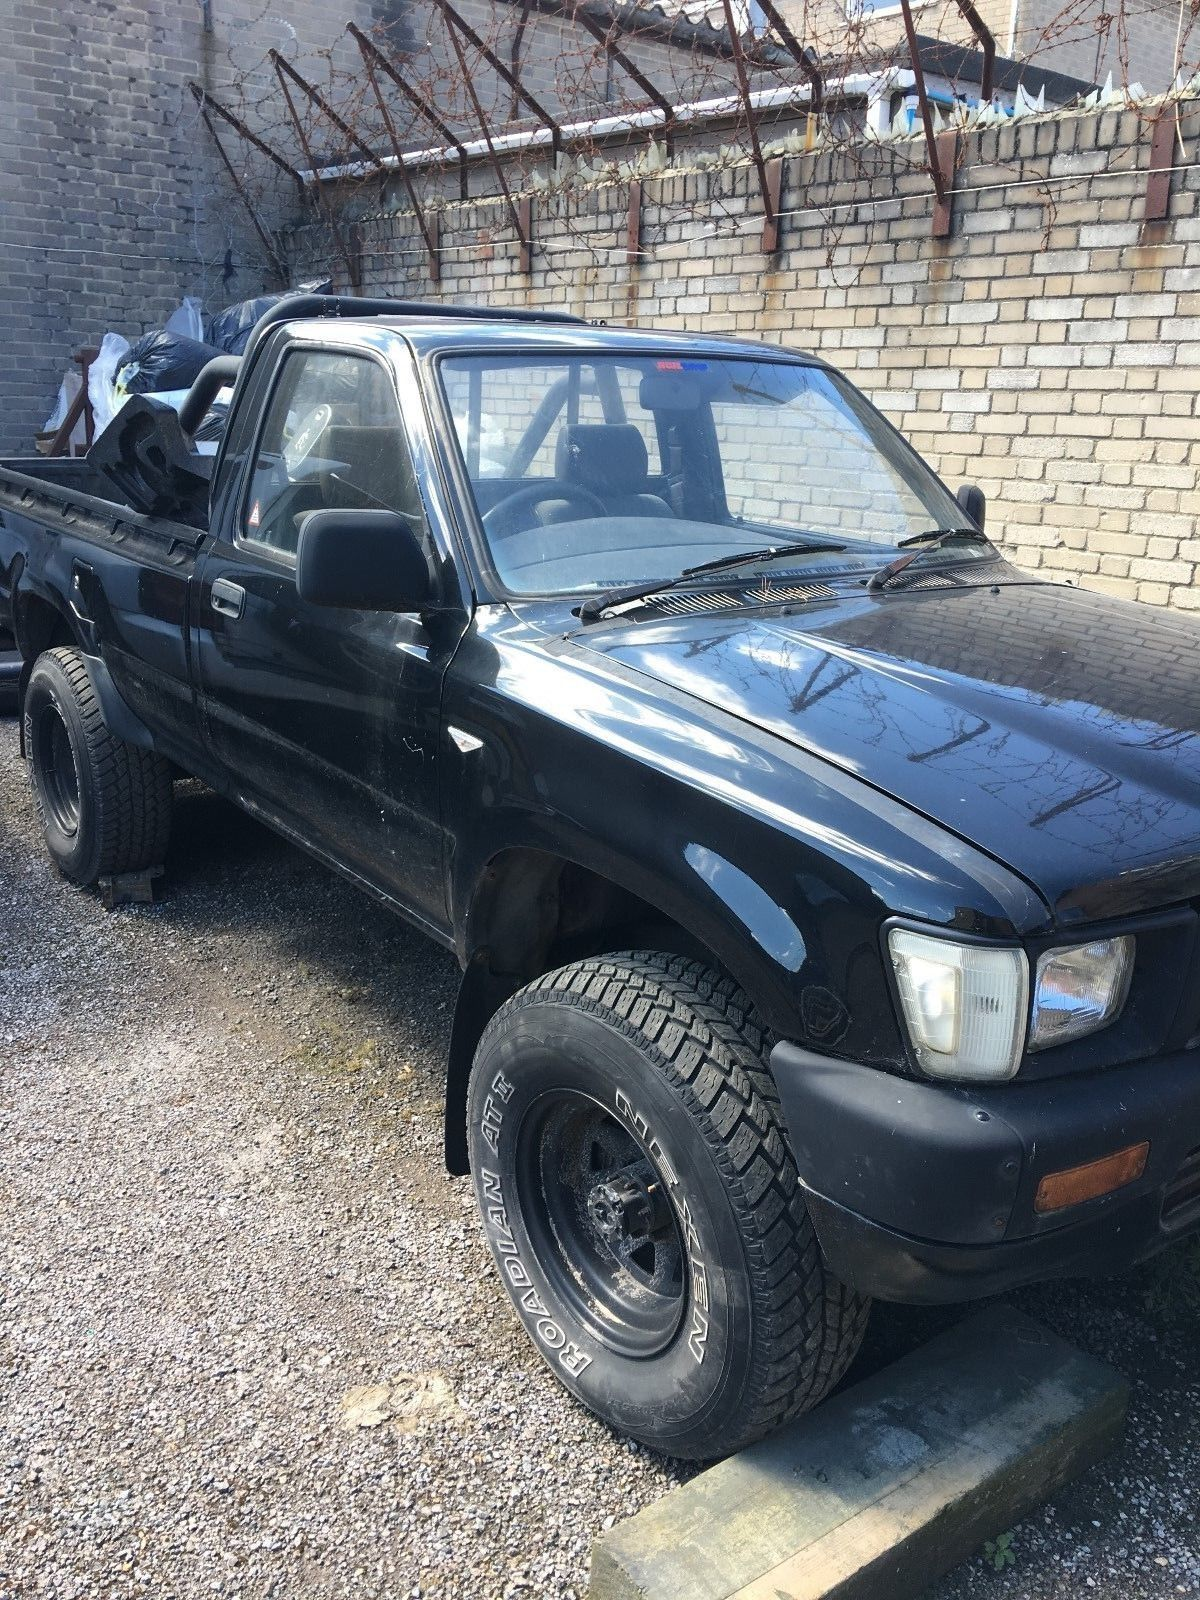 eBay: TOYOTA PICK UP TRUCK UNFINISHED PROJECT #carparts #carrepair ...